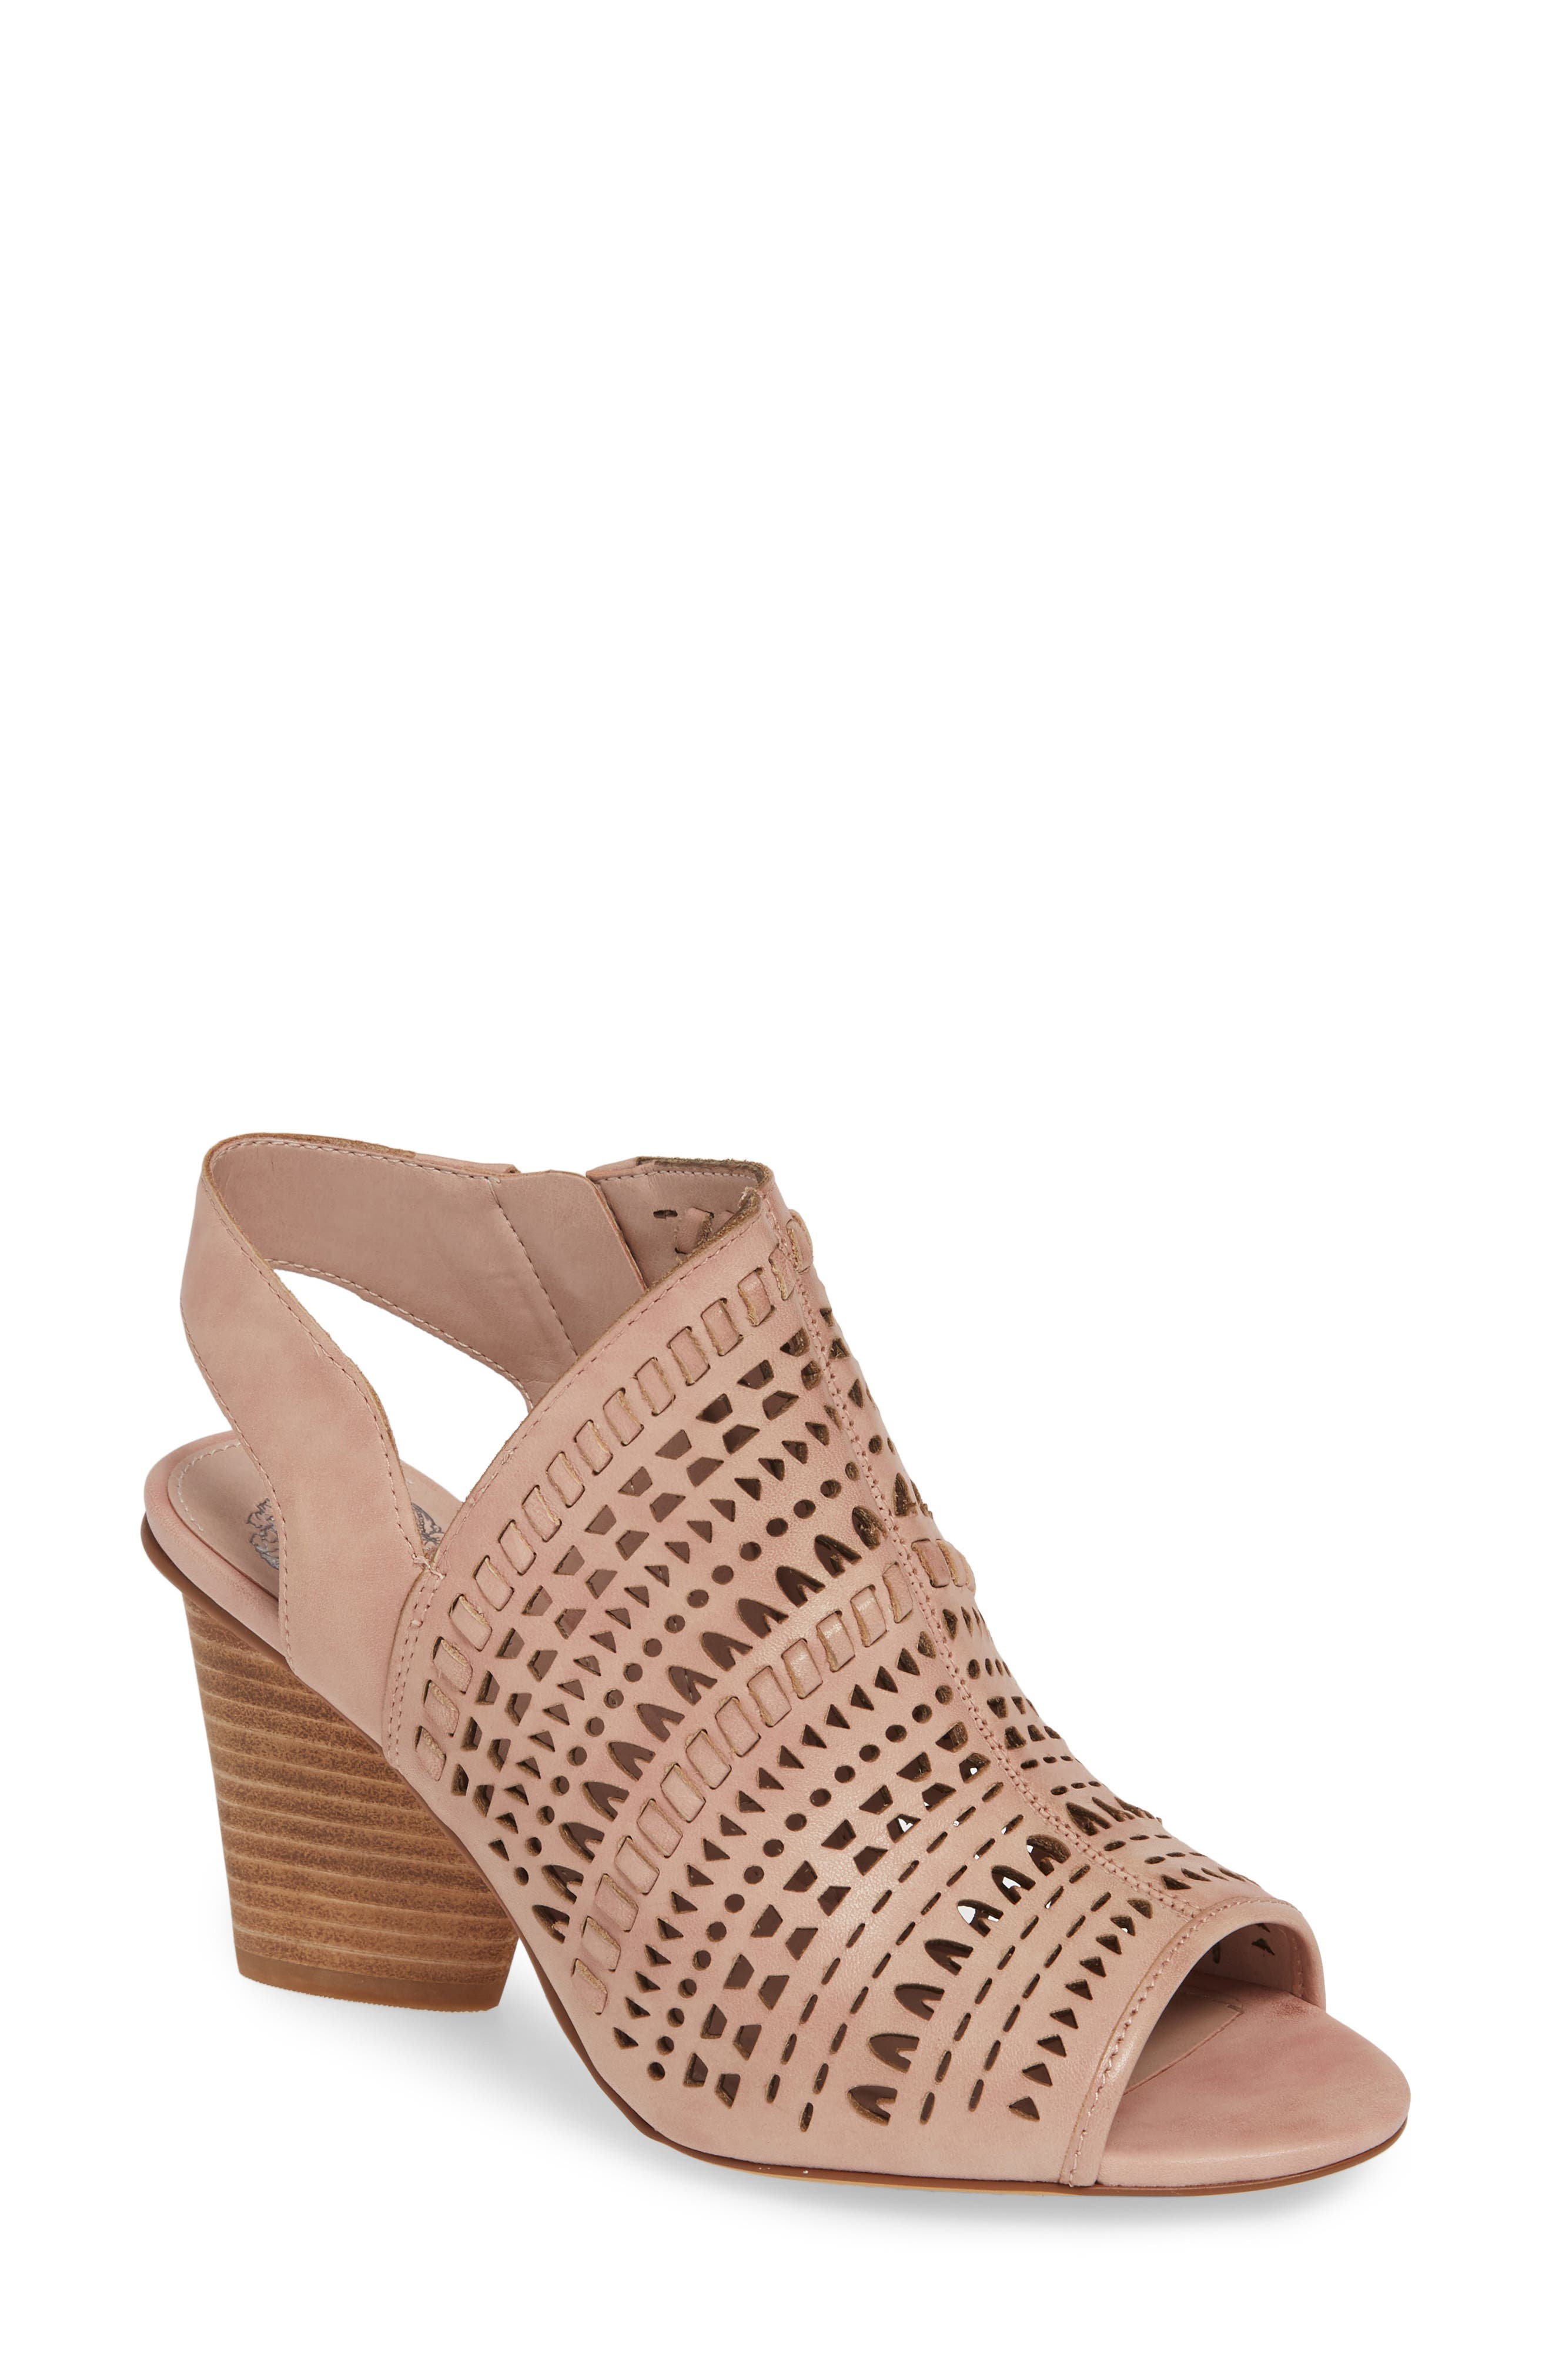 Vince Camuto Derechie Perforated Shield Sandal, Pink